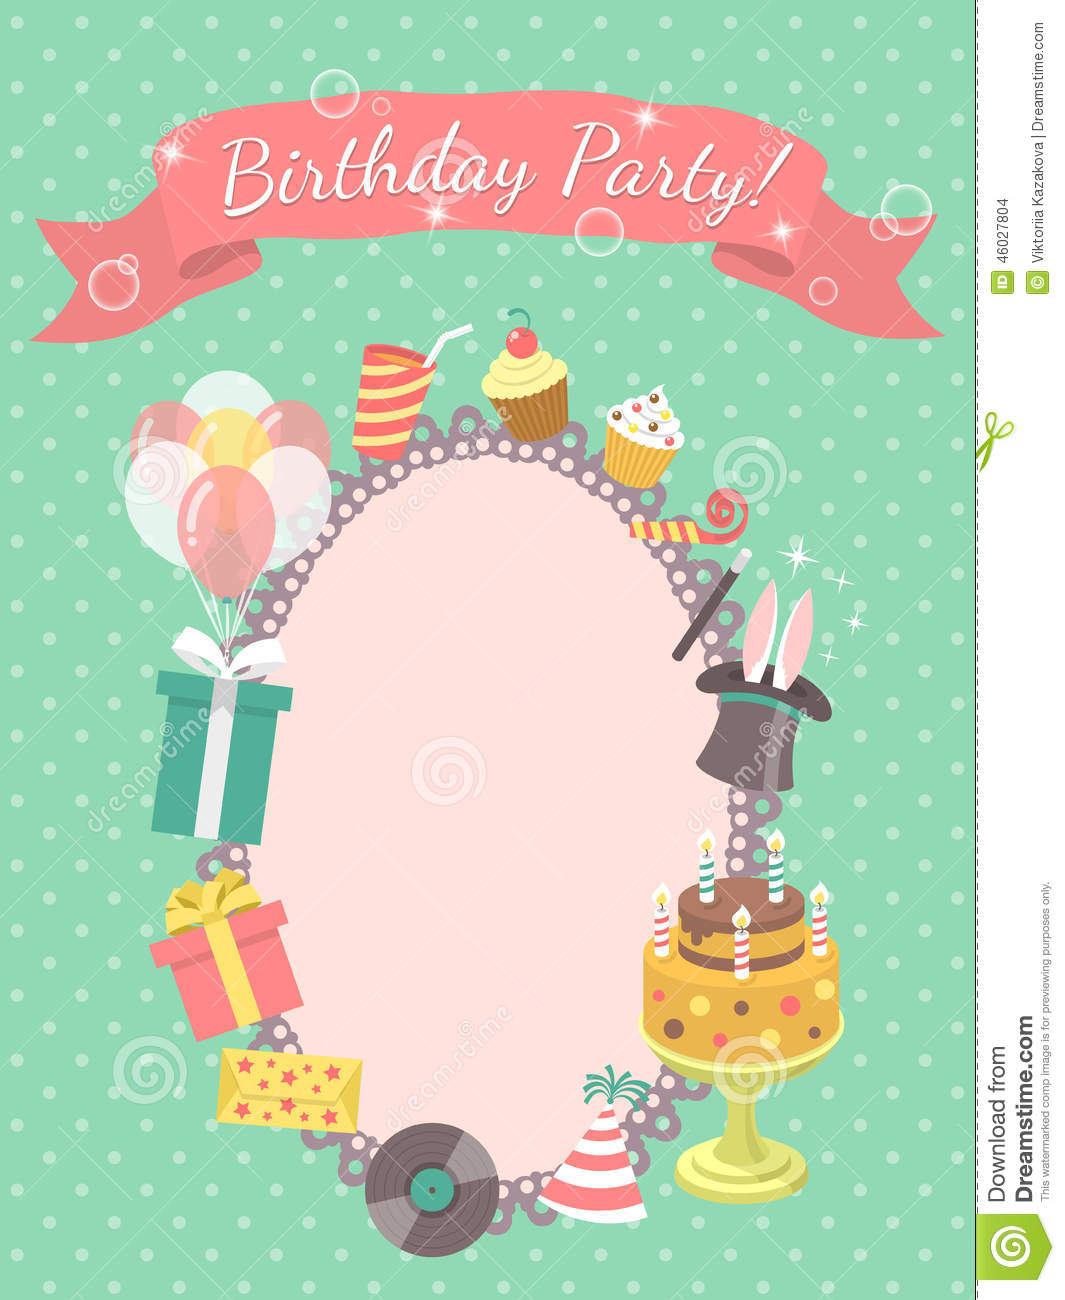 Birthday Party Greetings